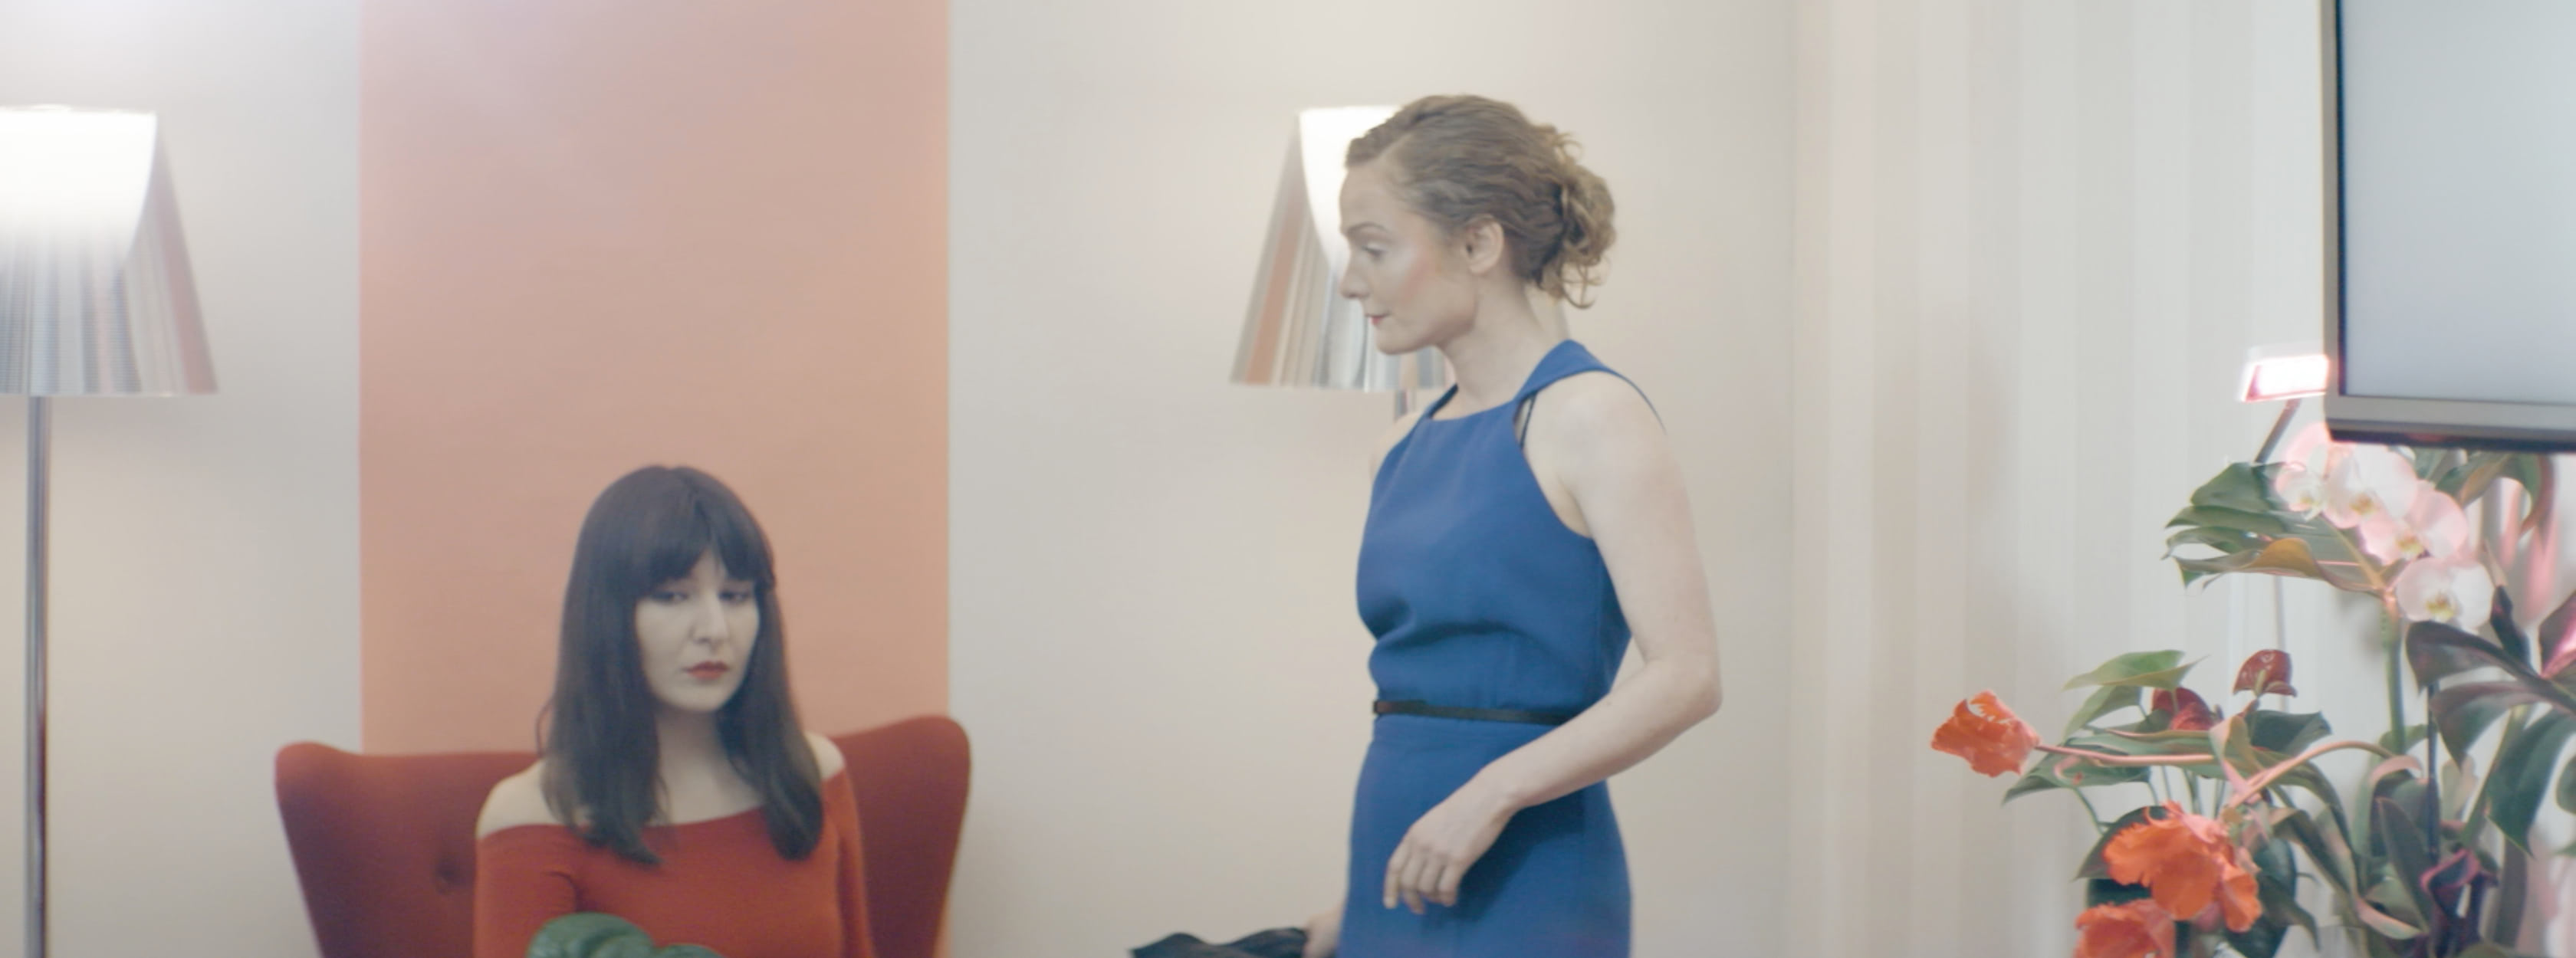 Two women in a room with flowers, one is looking at the other.